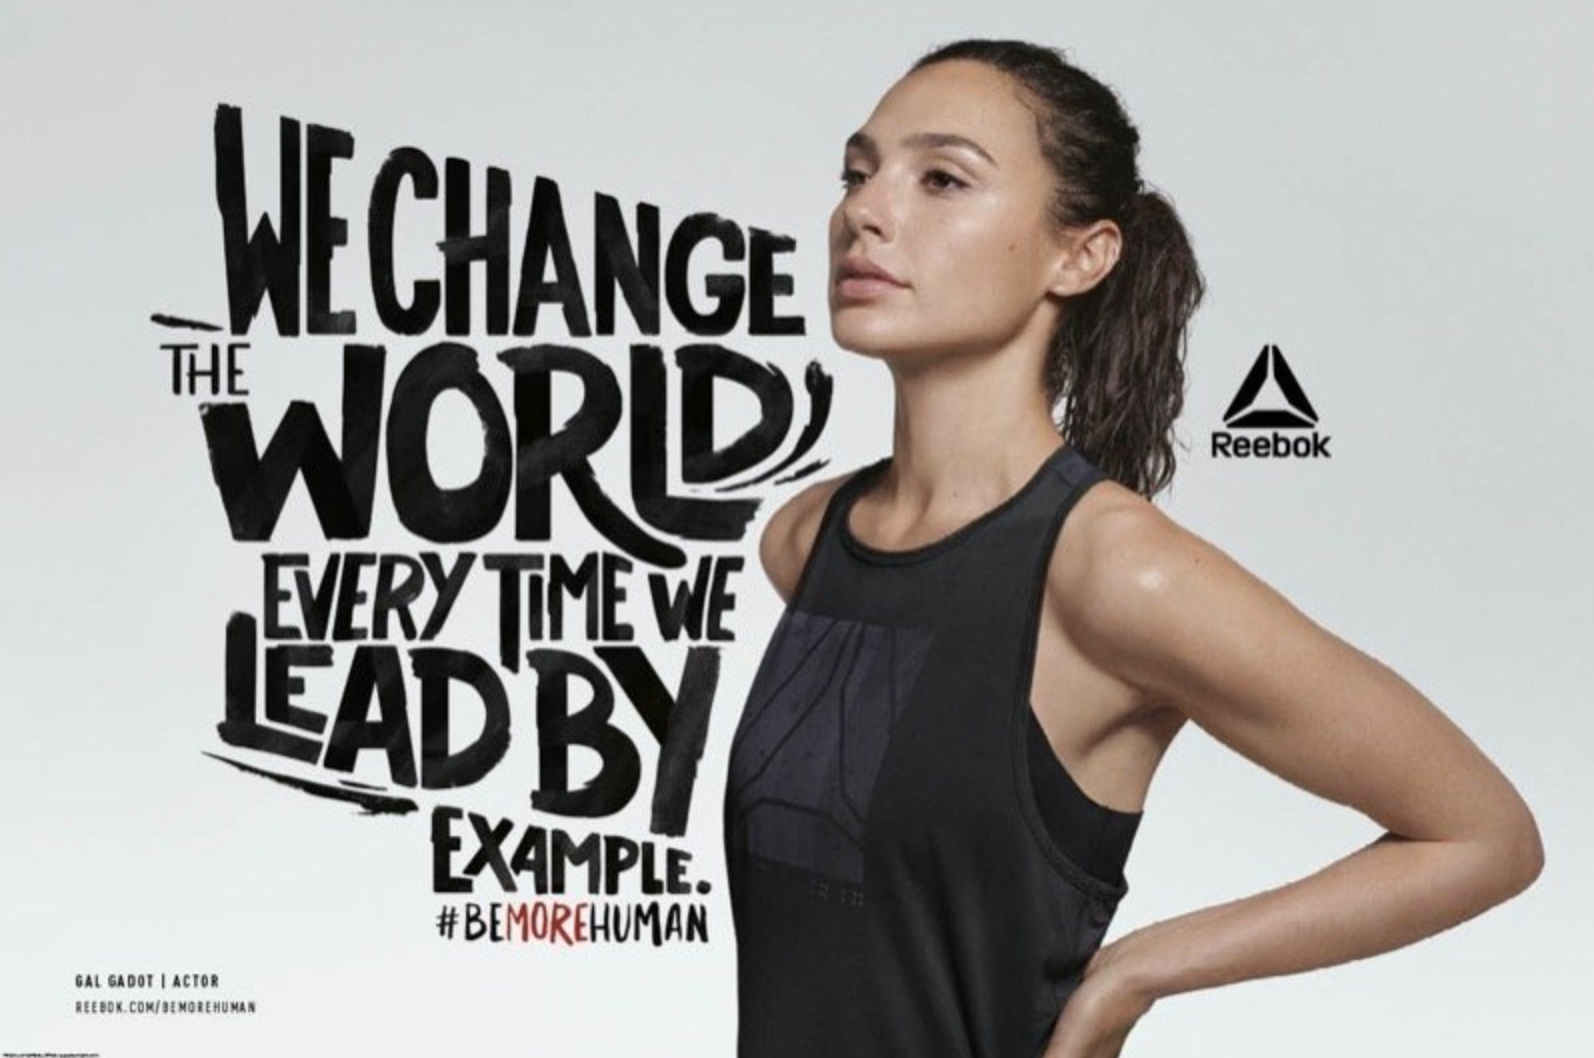 Actress Gal Gadot poses in an inspirational advertisement for Reebok's #BeMoreHuman campaign.